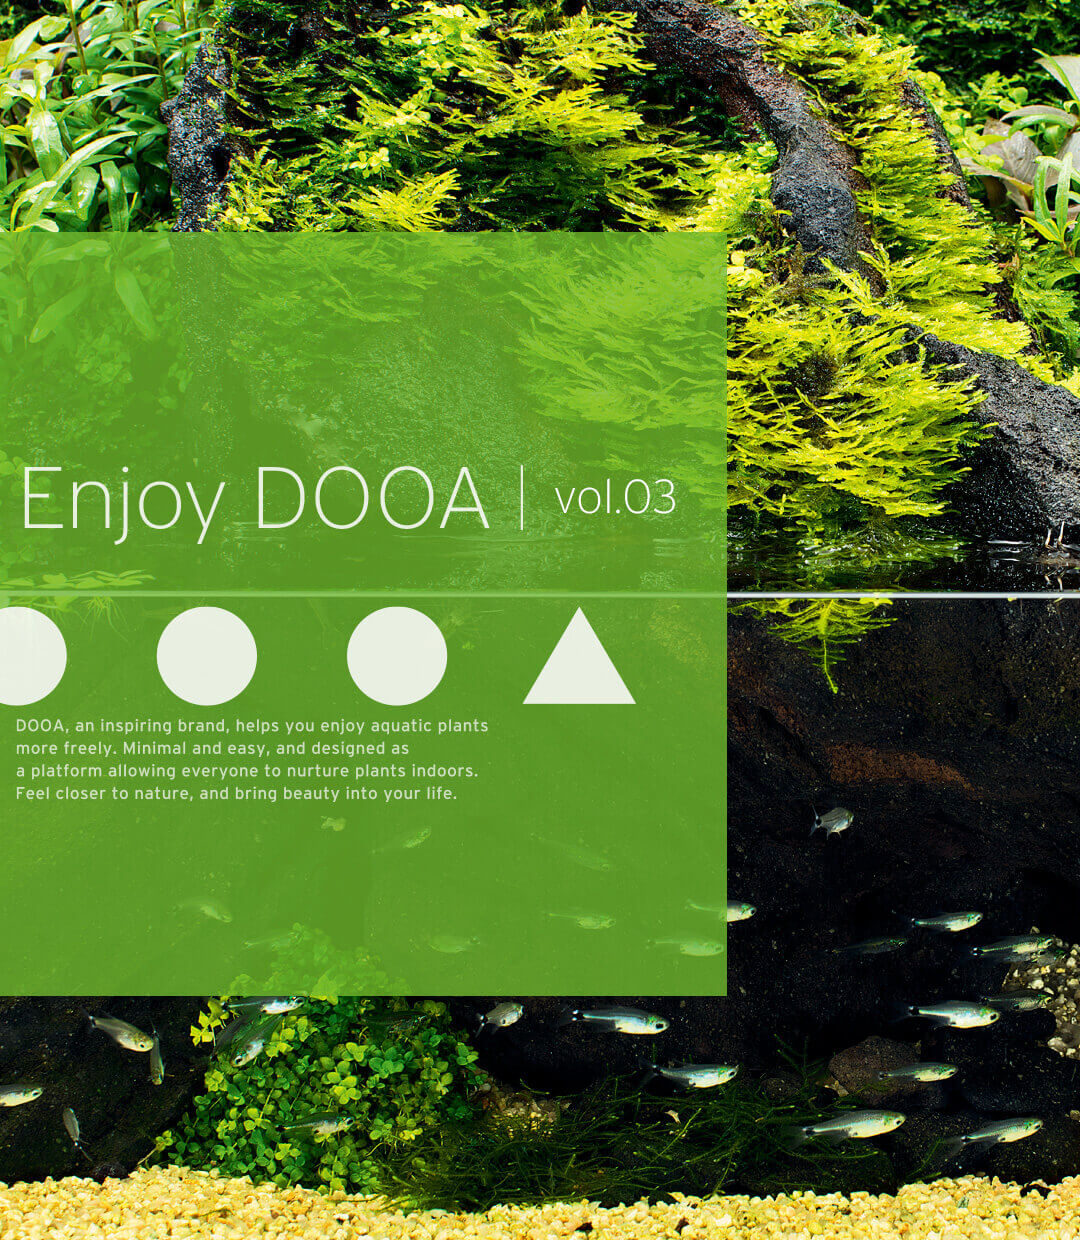 Enjoy DOOA vol.03